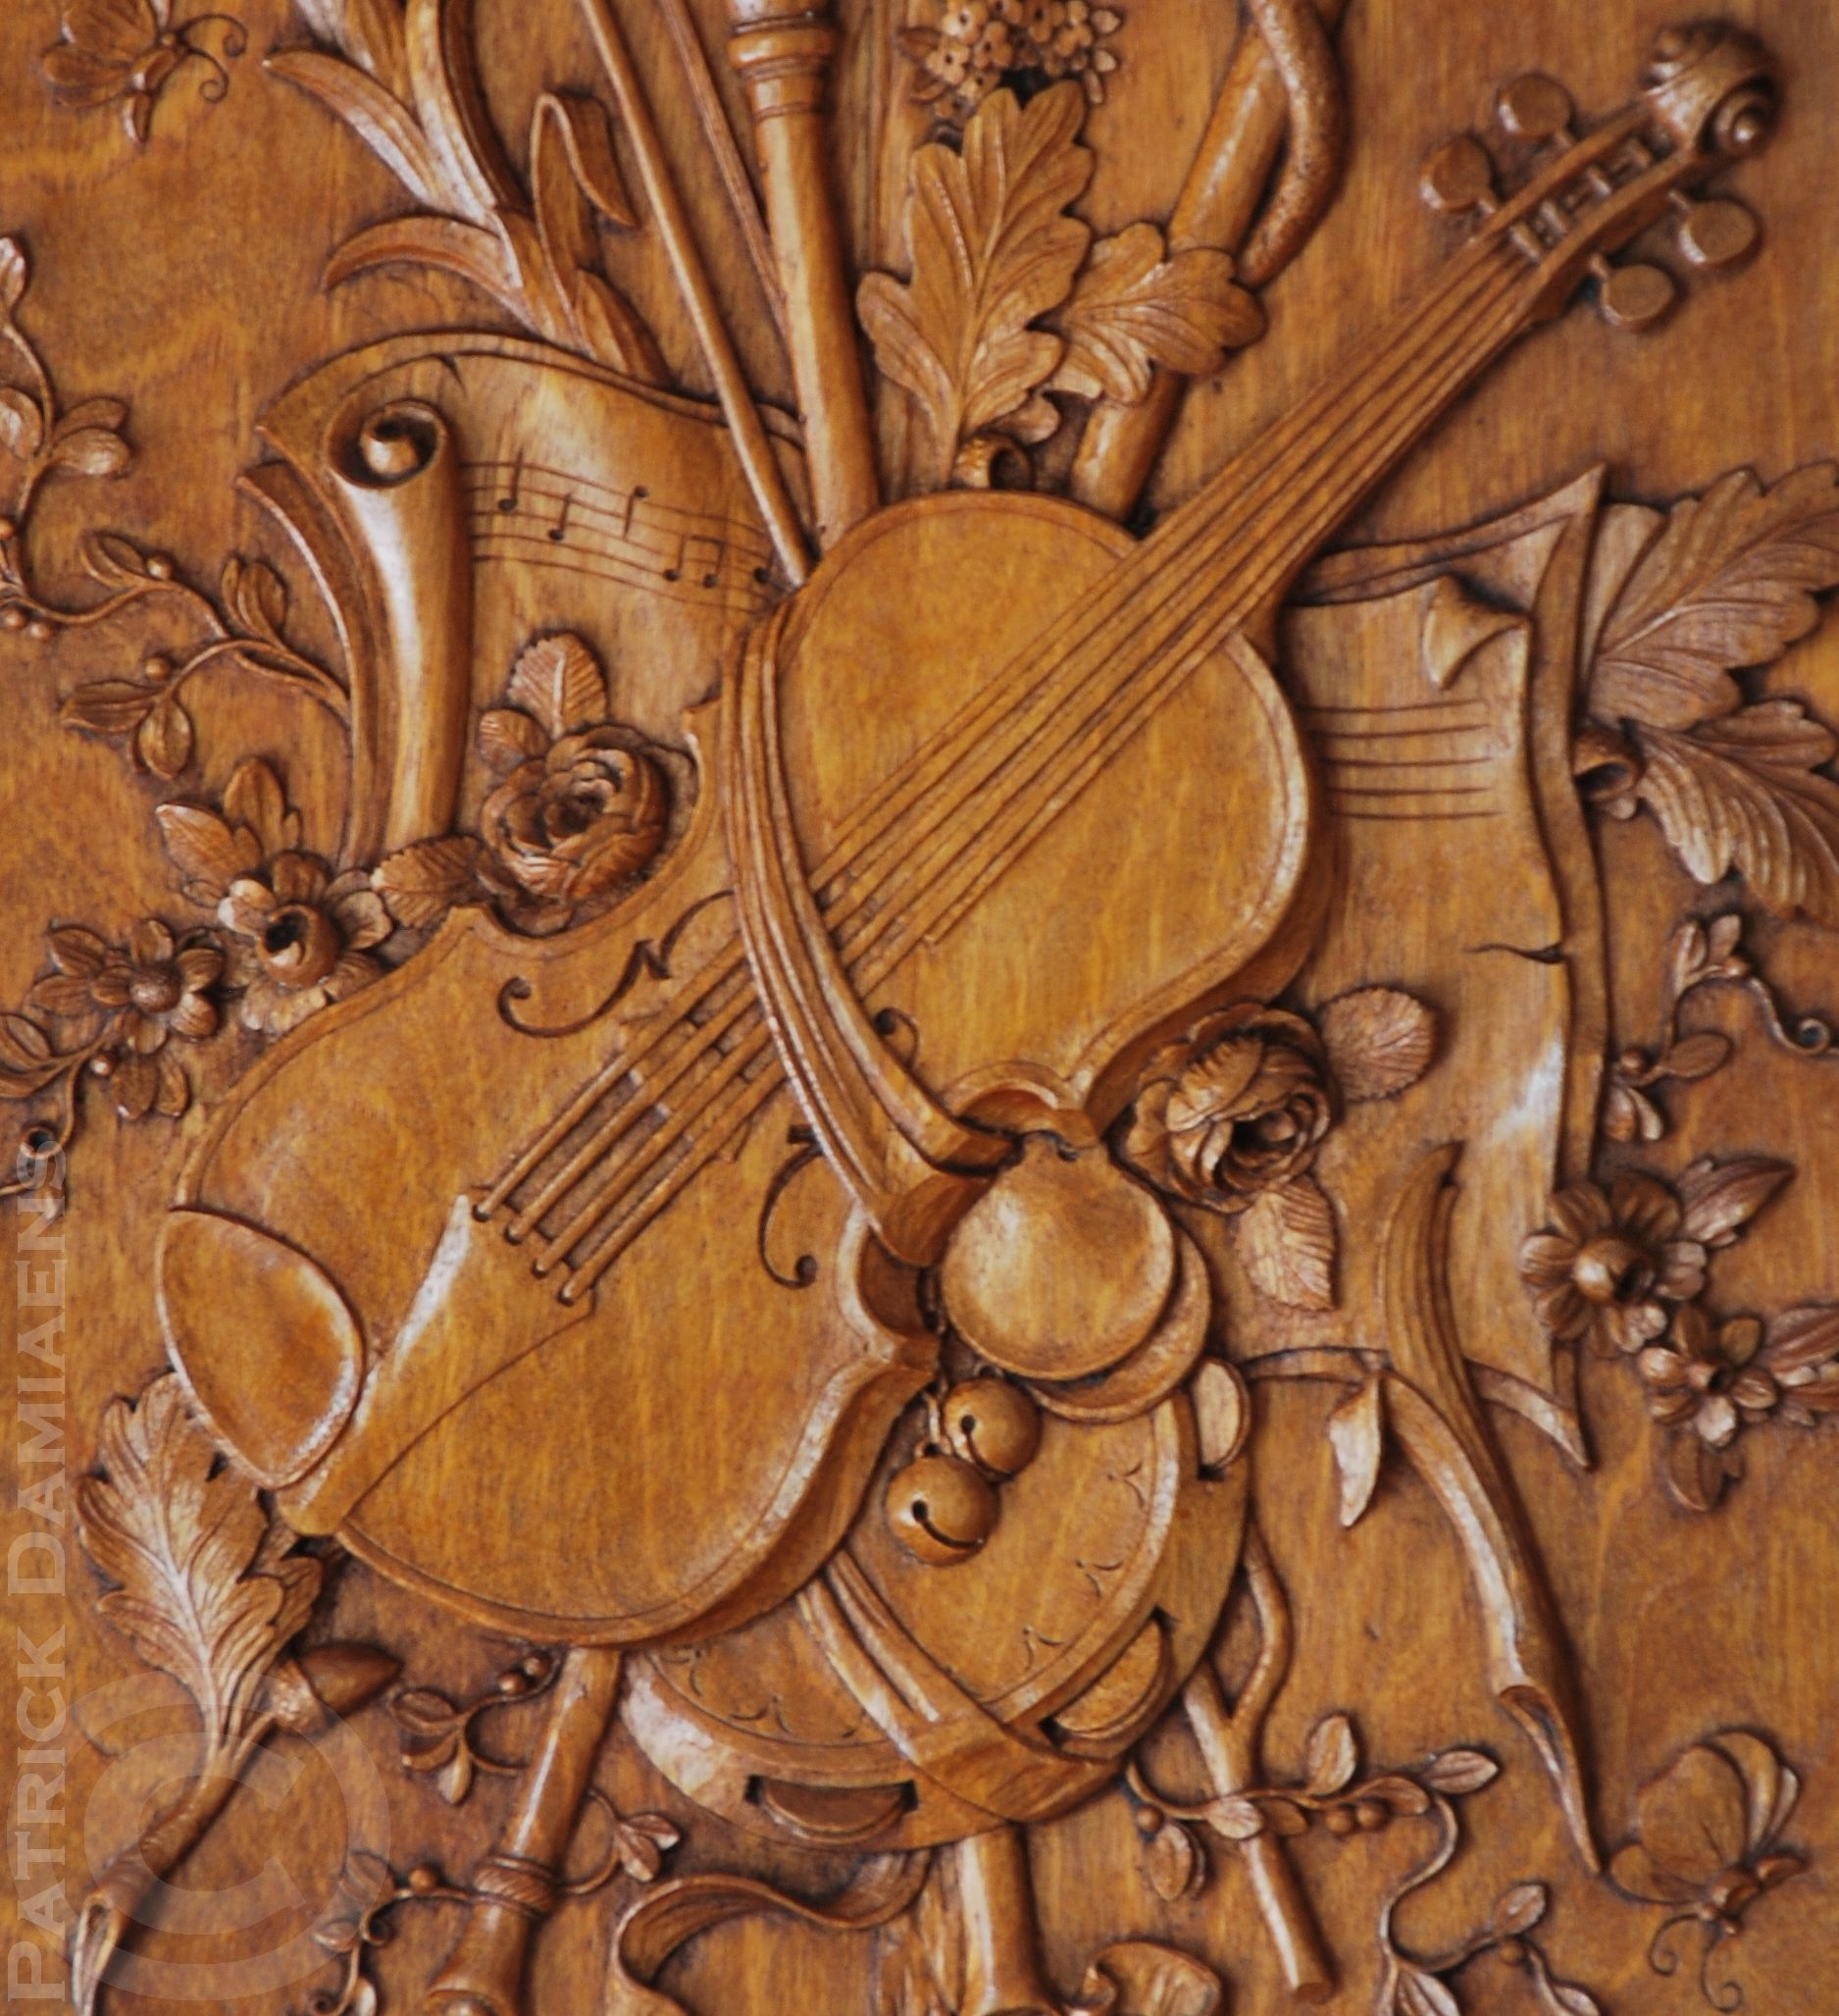 Carved trophy musical trophy carved in walnut http: www